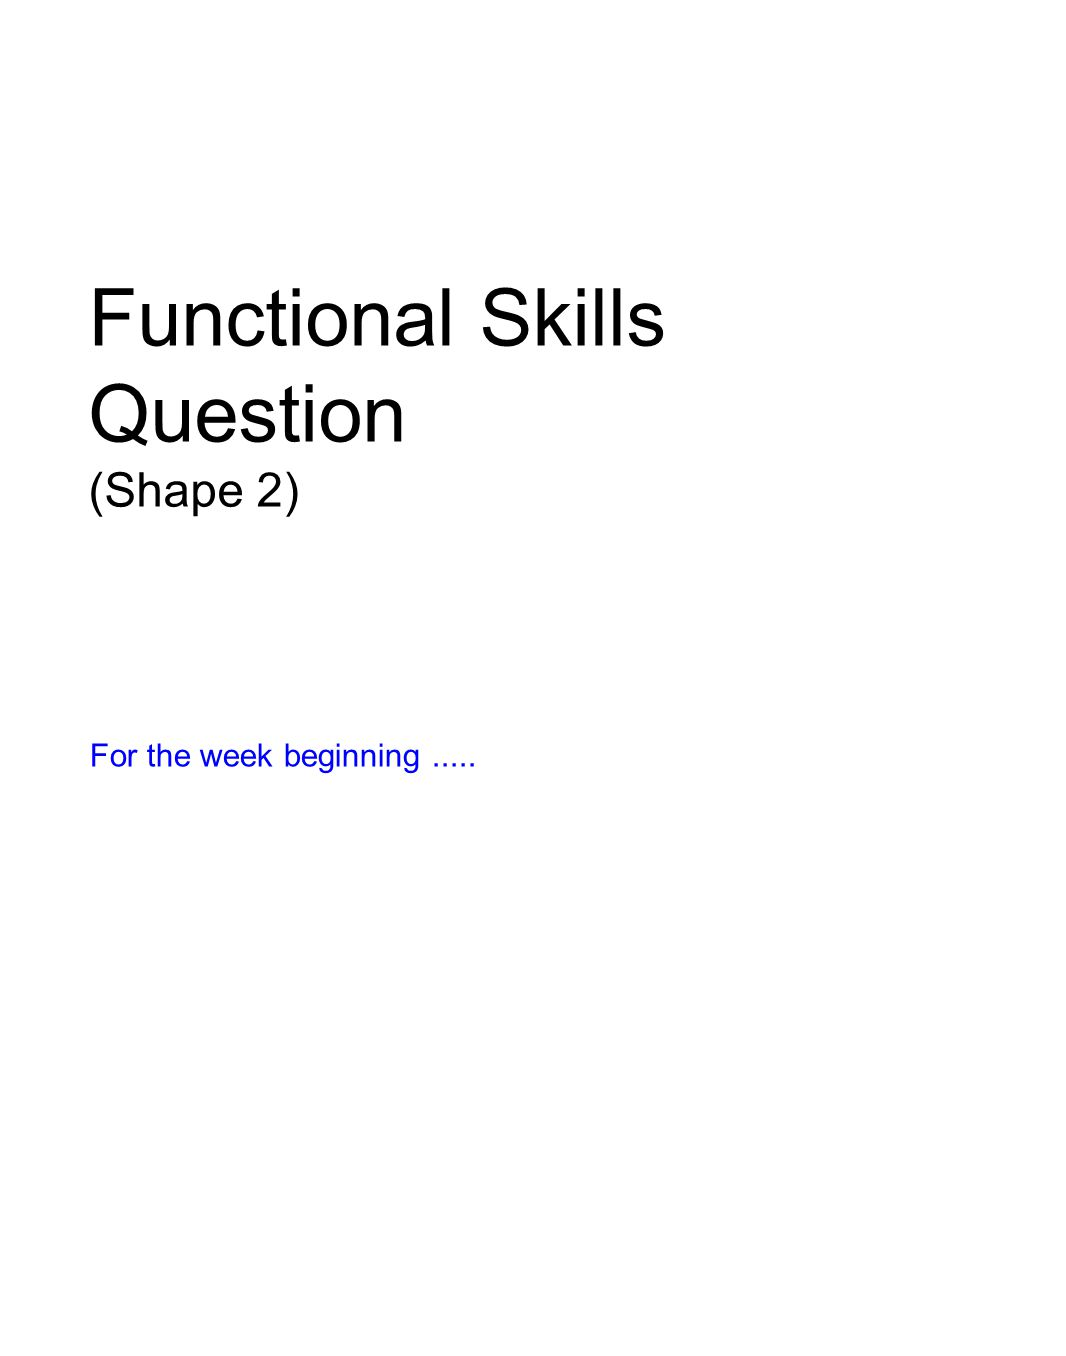 Functional Skills Question (Shape 2) For the week beginning.....